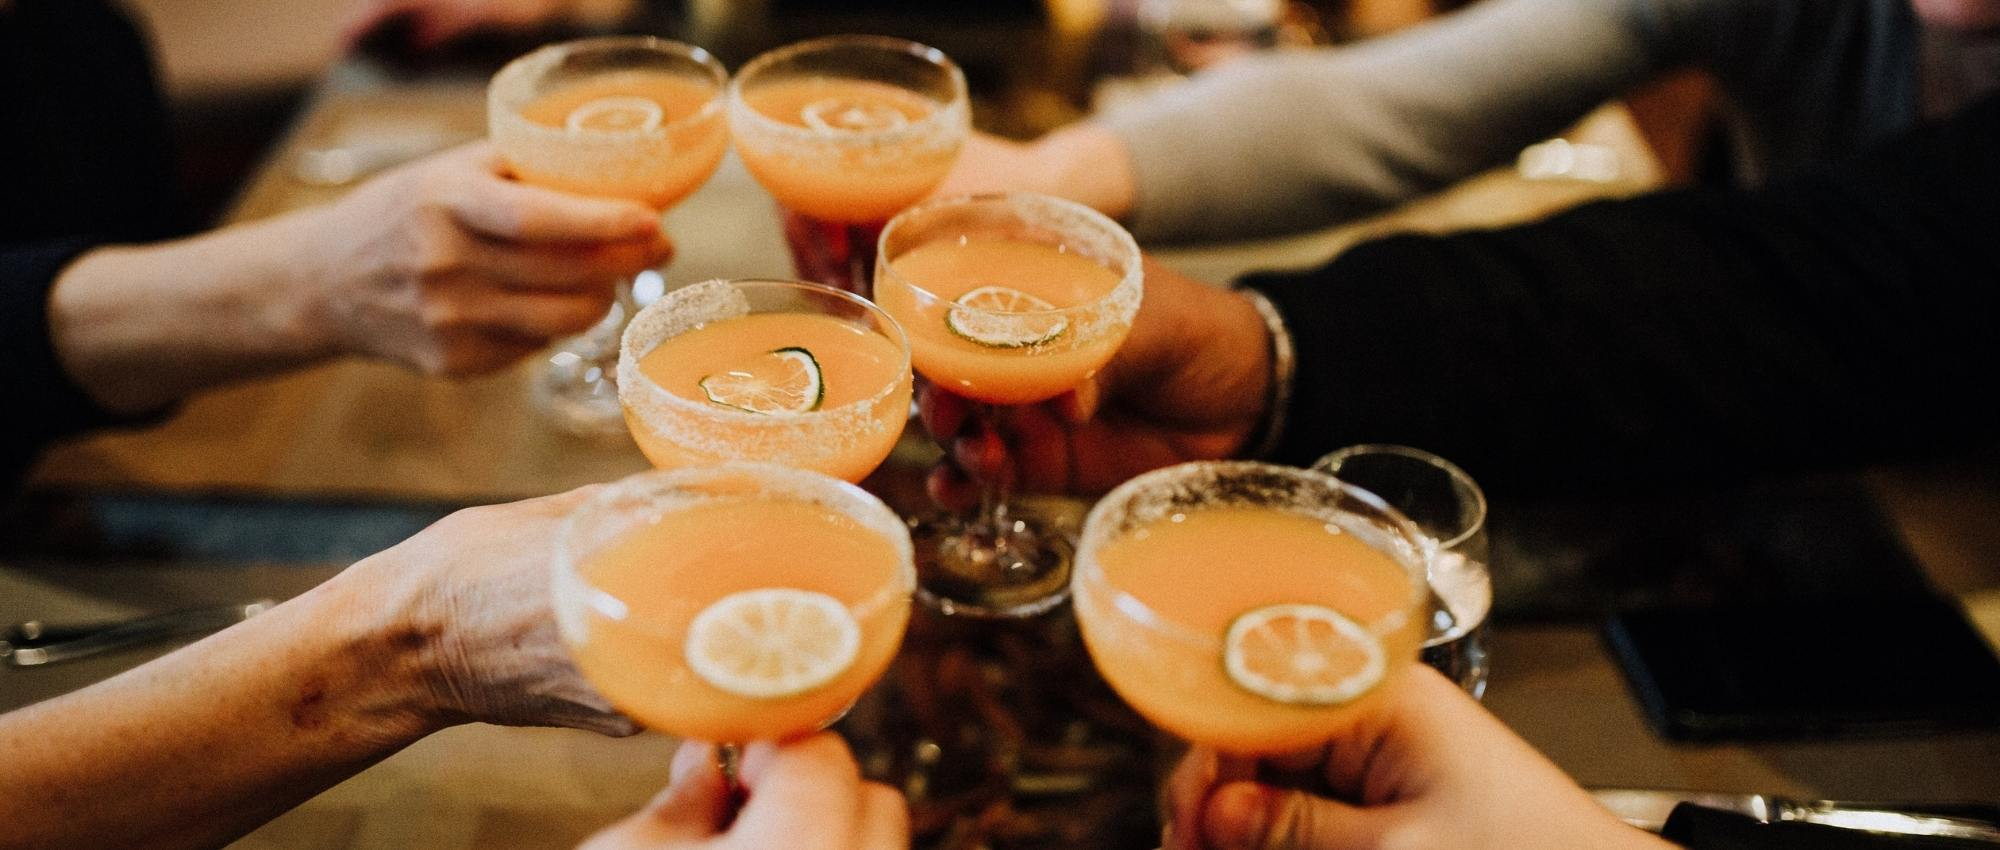 team building group cheersing cocktails during food tour